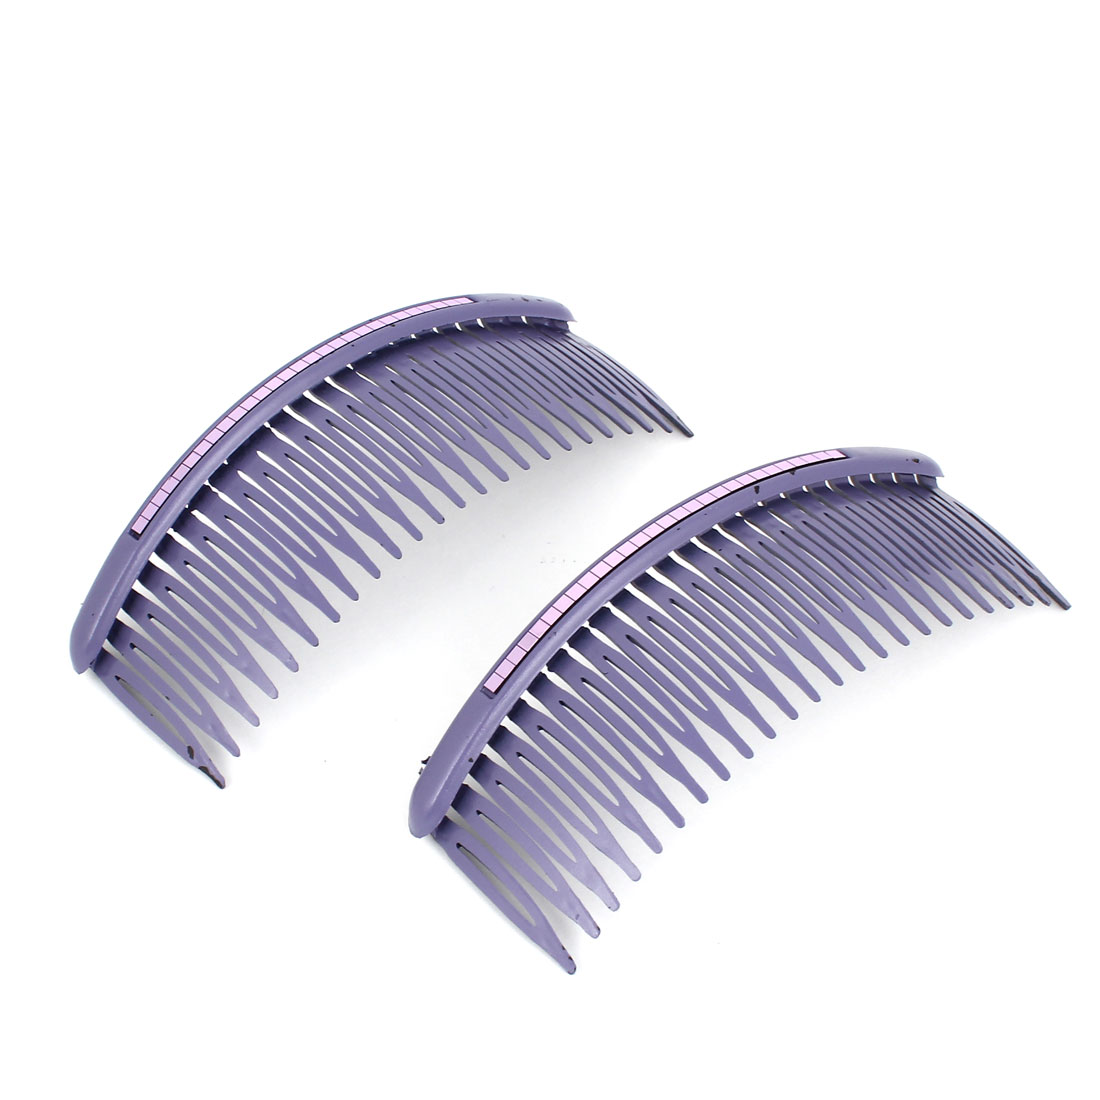 2pcs Makeup Tool Hairdress Comb Shape Hair Clip Clamp Purple for Women